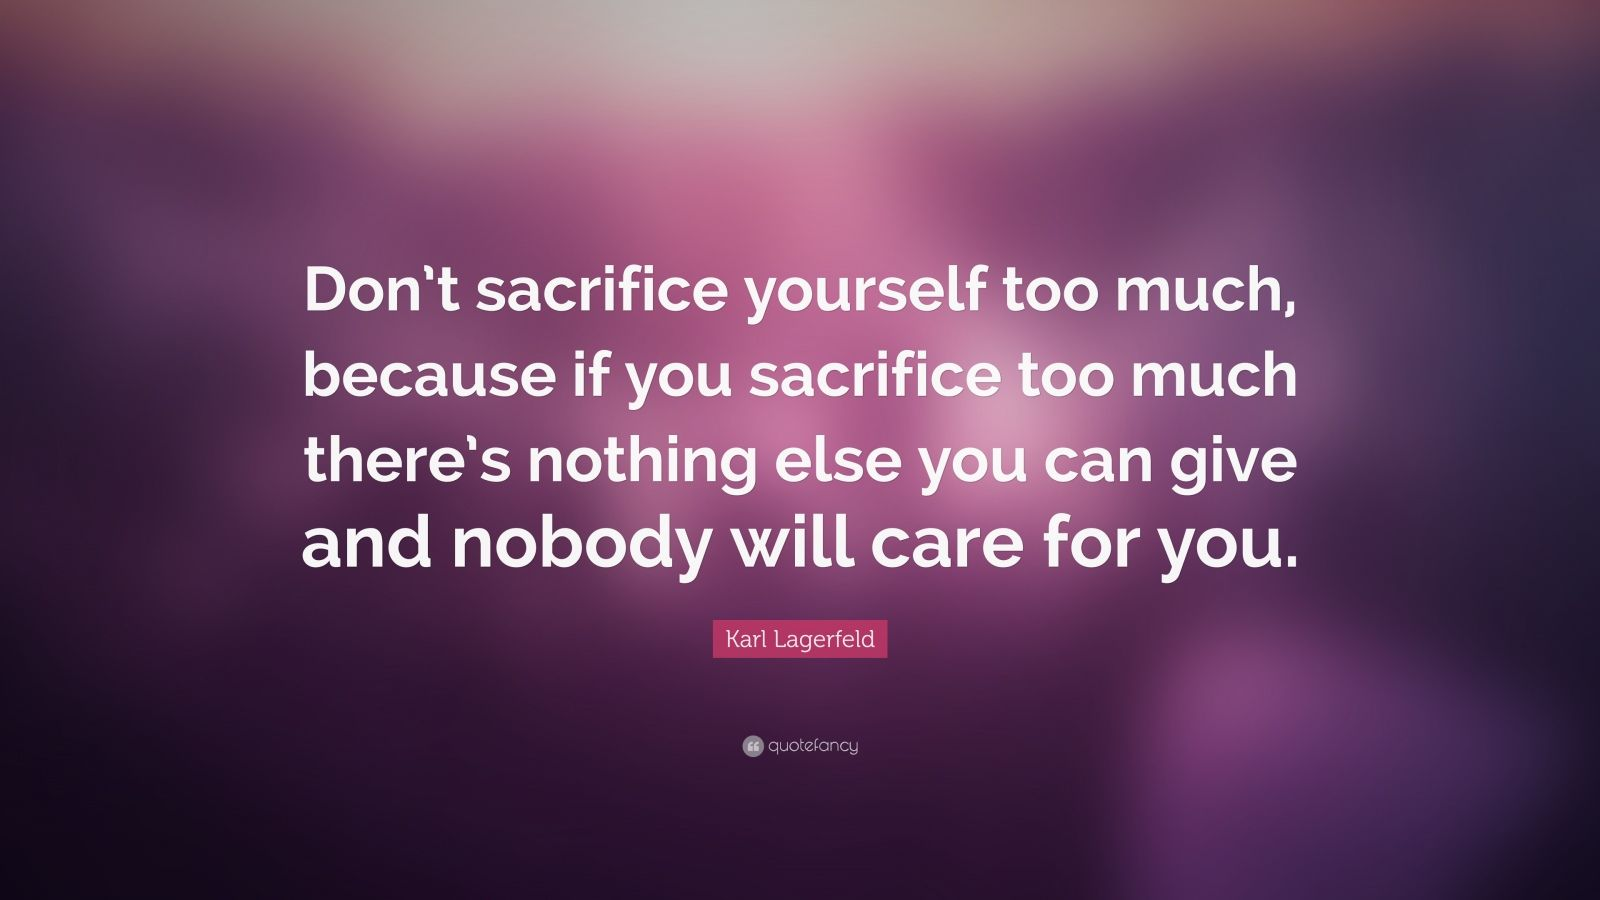 """Karl Lagerfeld Quote: """"Don't sacrifice yourself too much, because if you sacrifice too much there's nothing else you can give and nobody will care for you."""""""